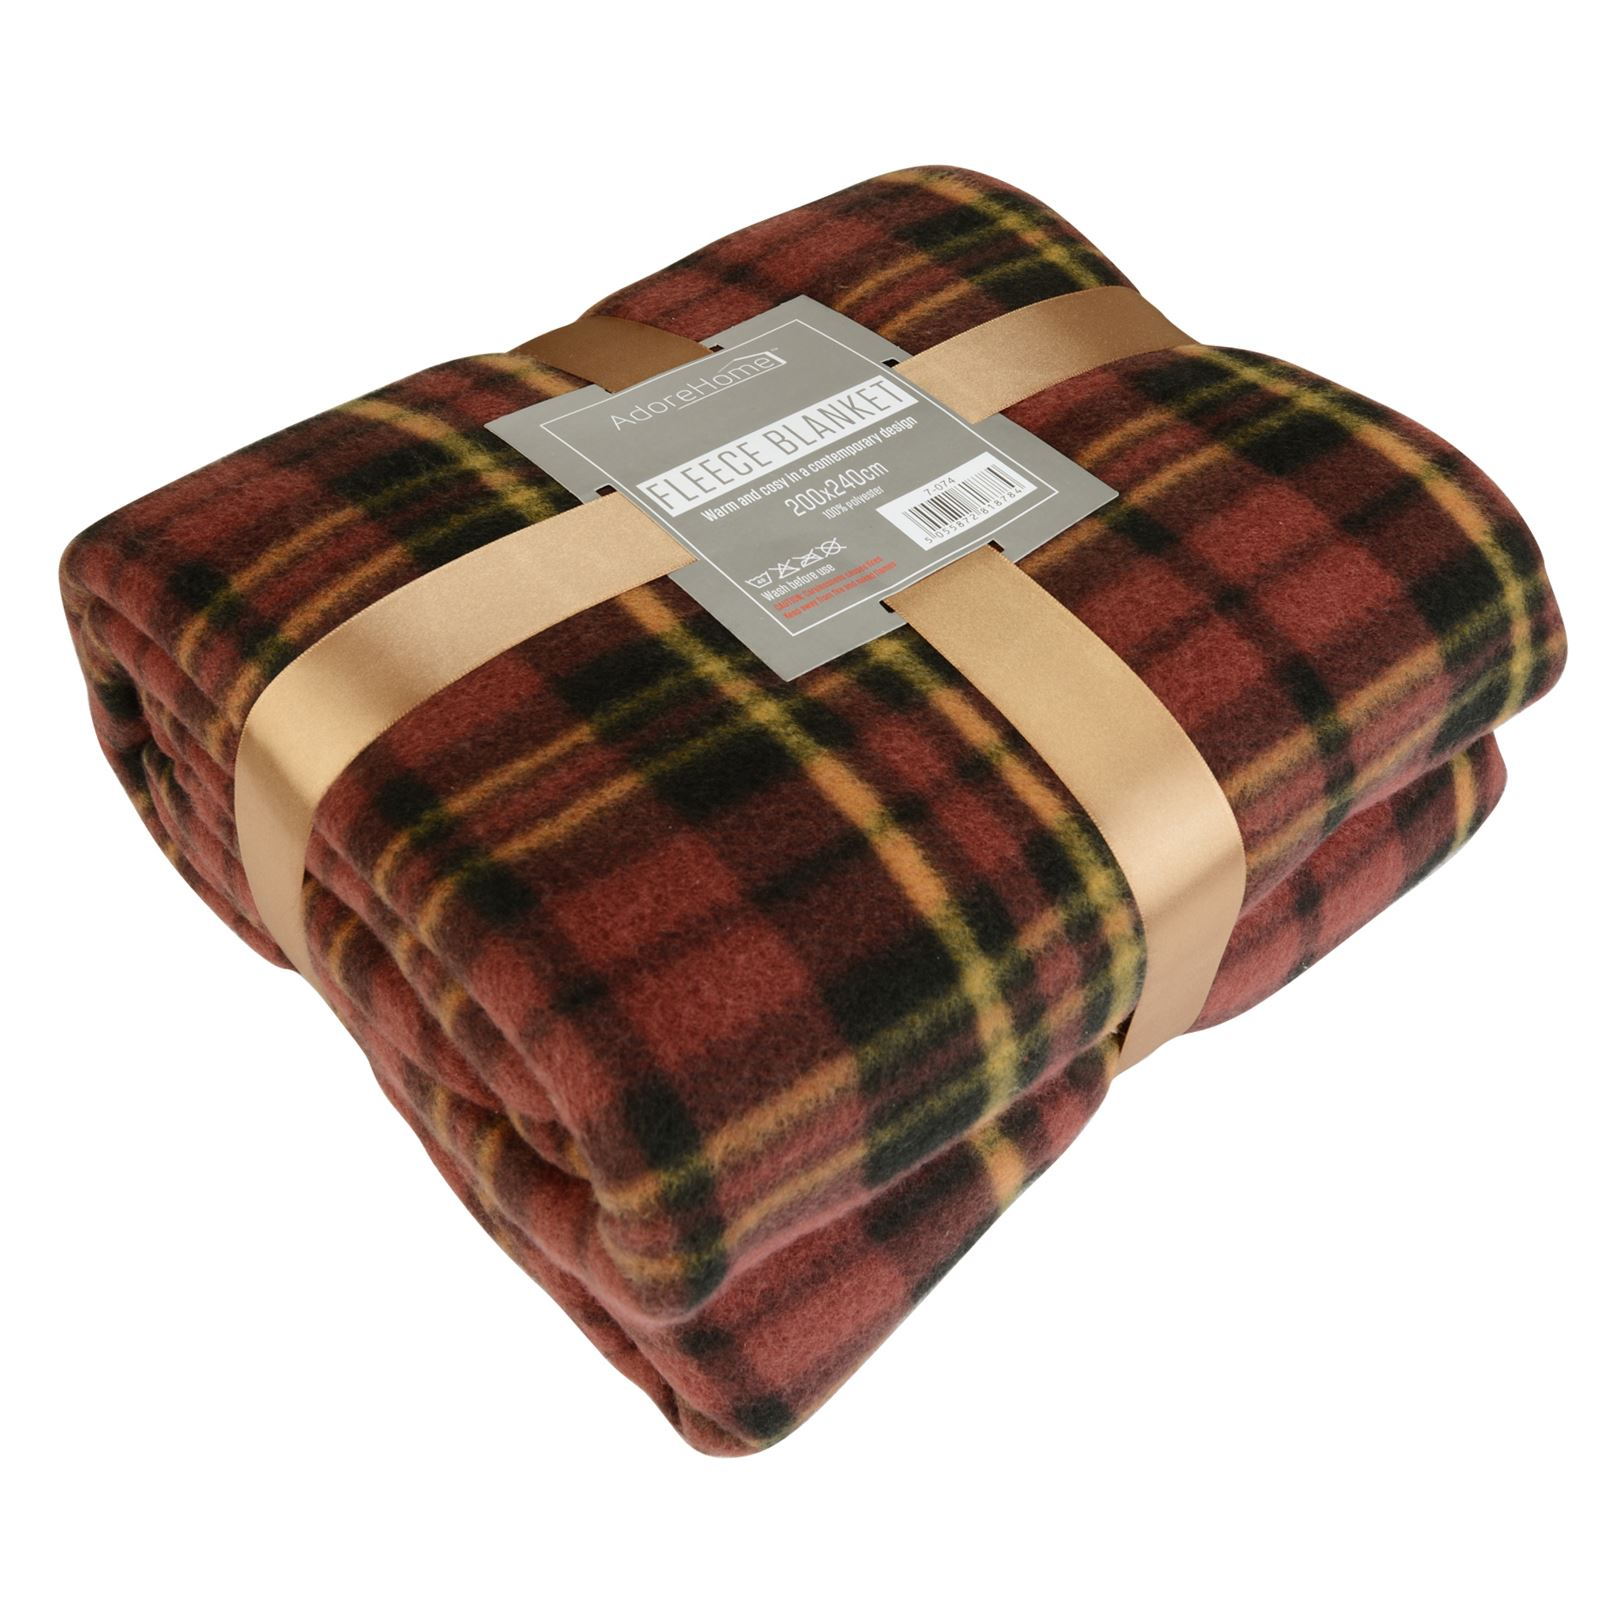 Layer your bed with the ultra-soft and plush Vellux Fleece Blanket. Perfect for year-round use, the premium microfiber yarn blanket is brushed on both sides to create more air pockets for a .